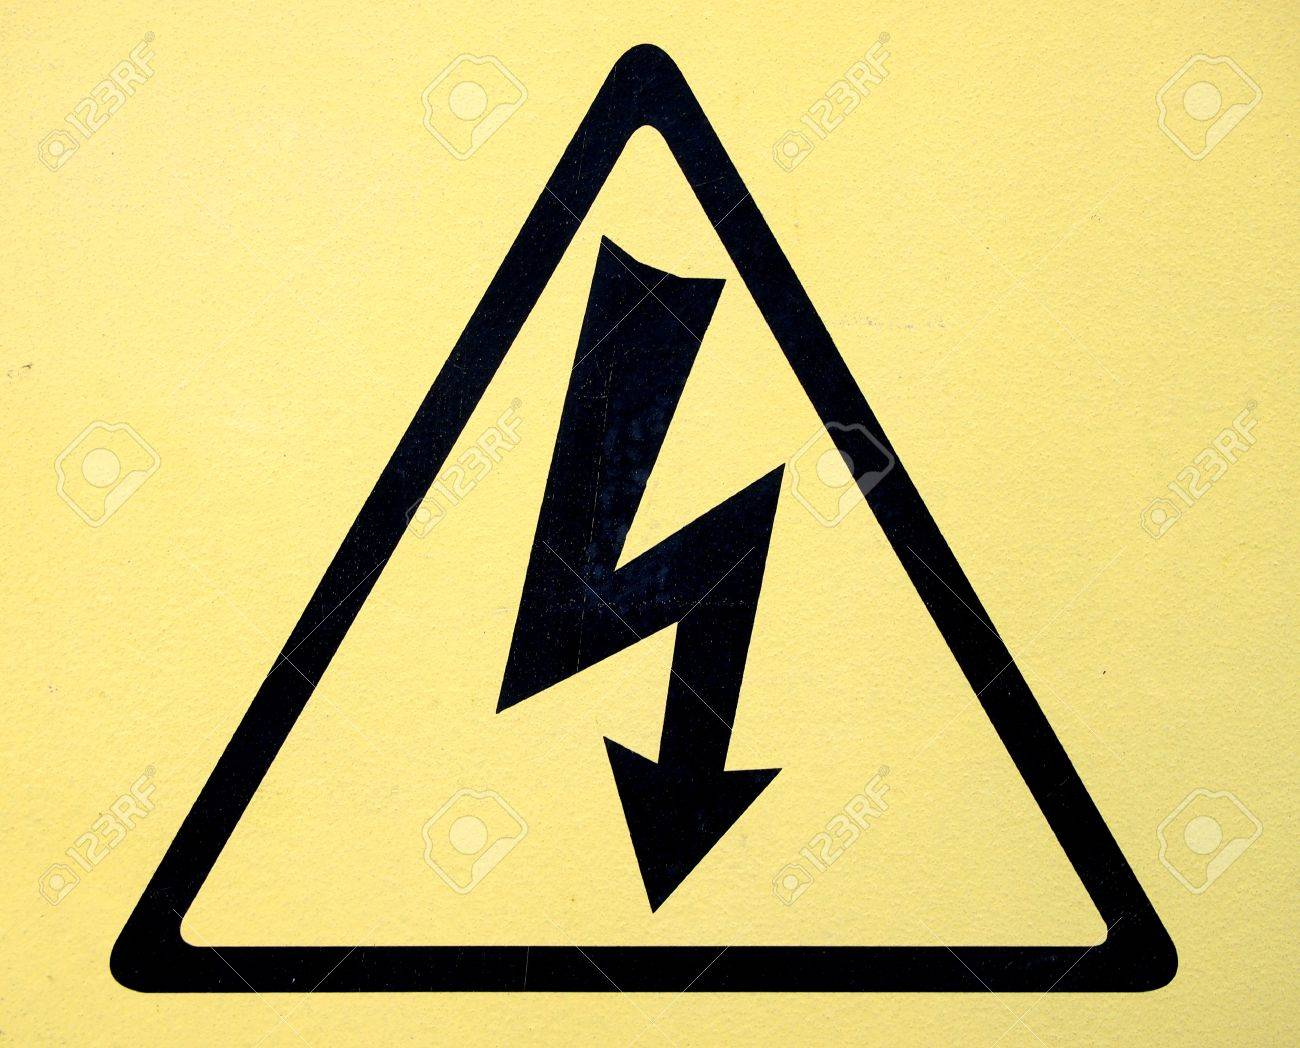 Nice How To Wire Ssr Big Ibanez Pickup Wiring Clean Ibanez Rg Wiring Fender S1 Switch Wiring Diagram Young Coil Tap Wiring GreenStrat Wiring Bridge Tone Sign Of Danger High Voltage Symbol Stock Photo, Picture And ..